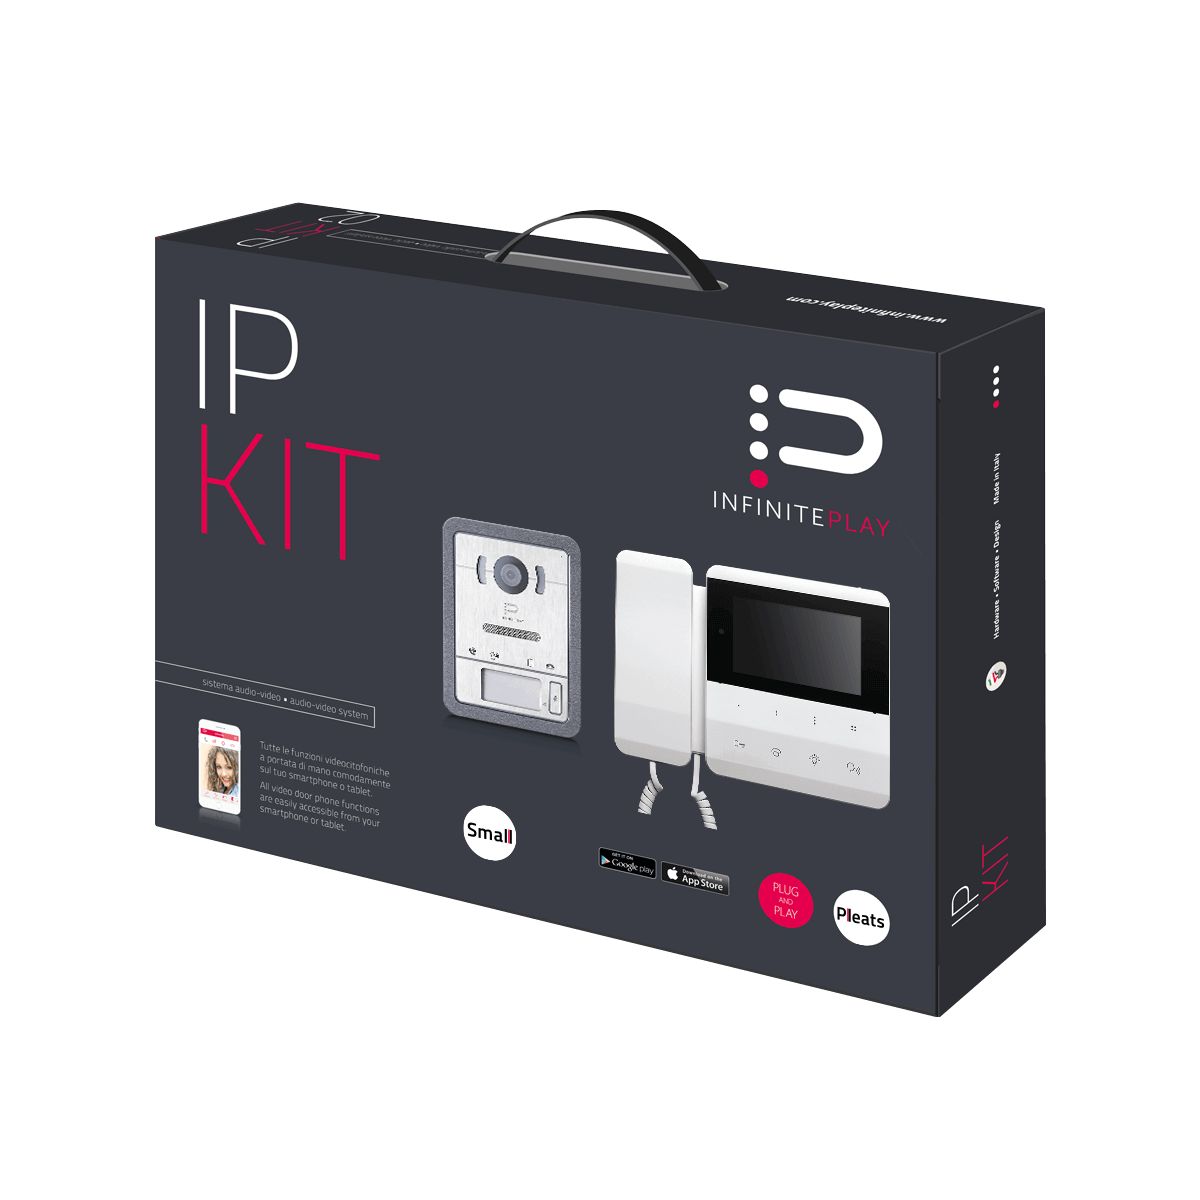 kit00-zk114png